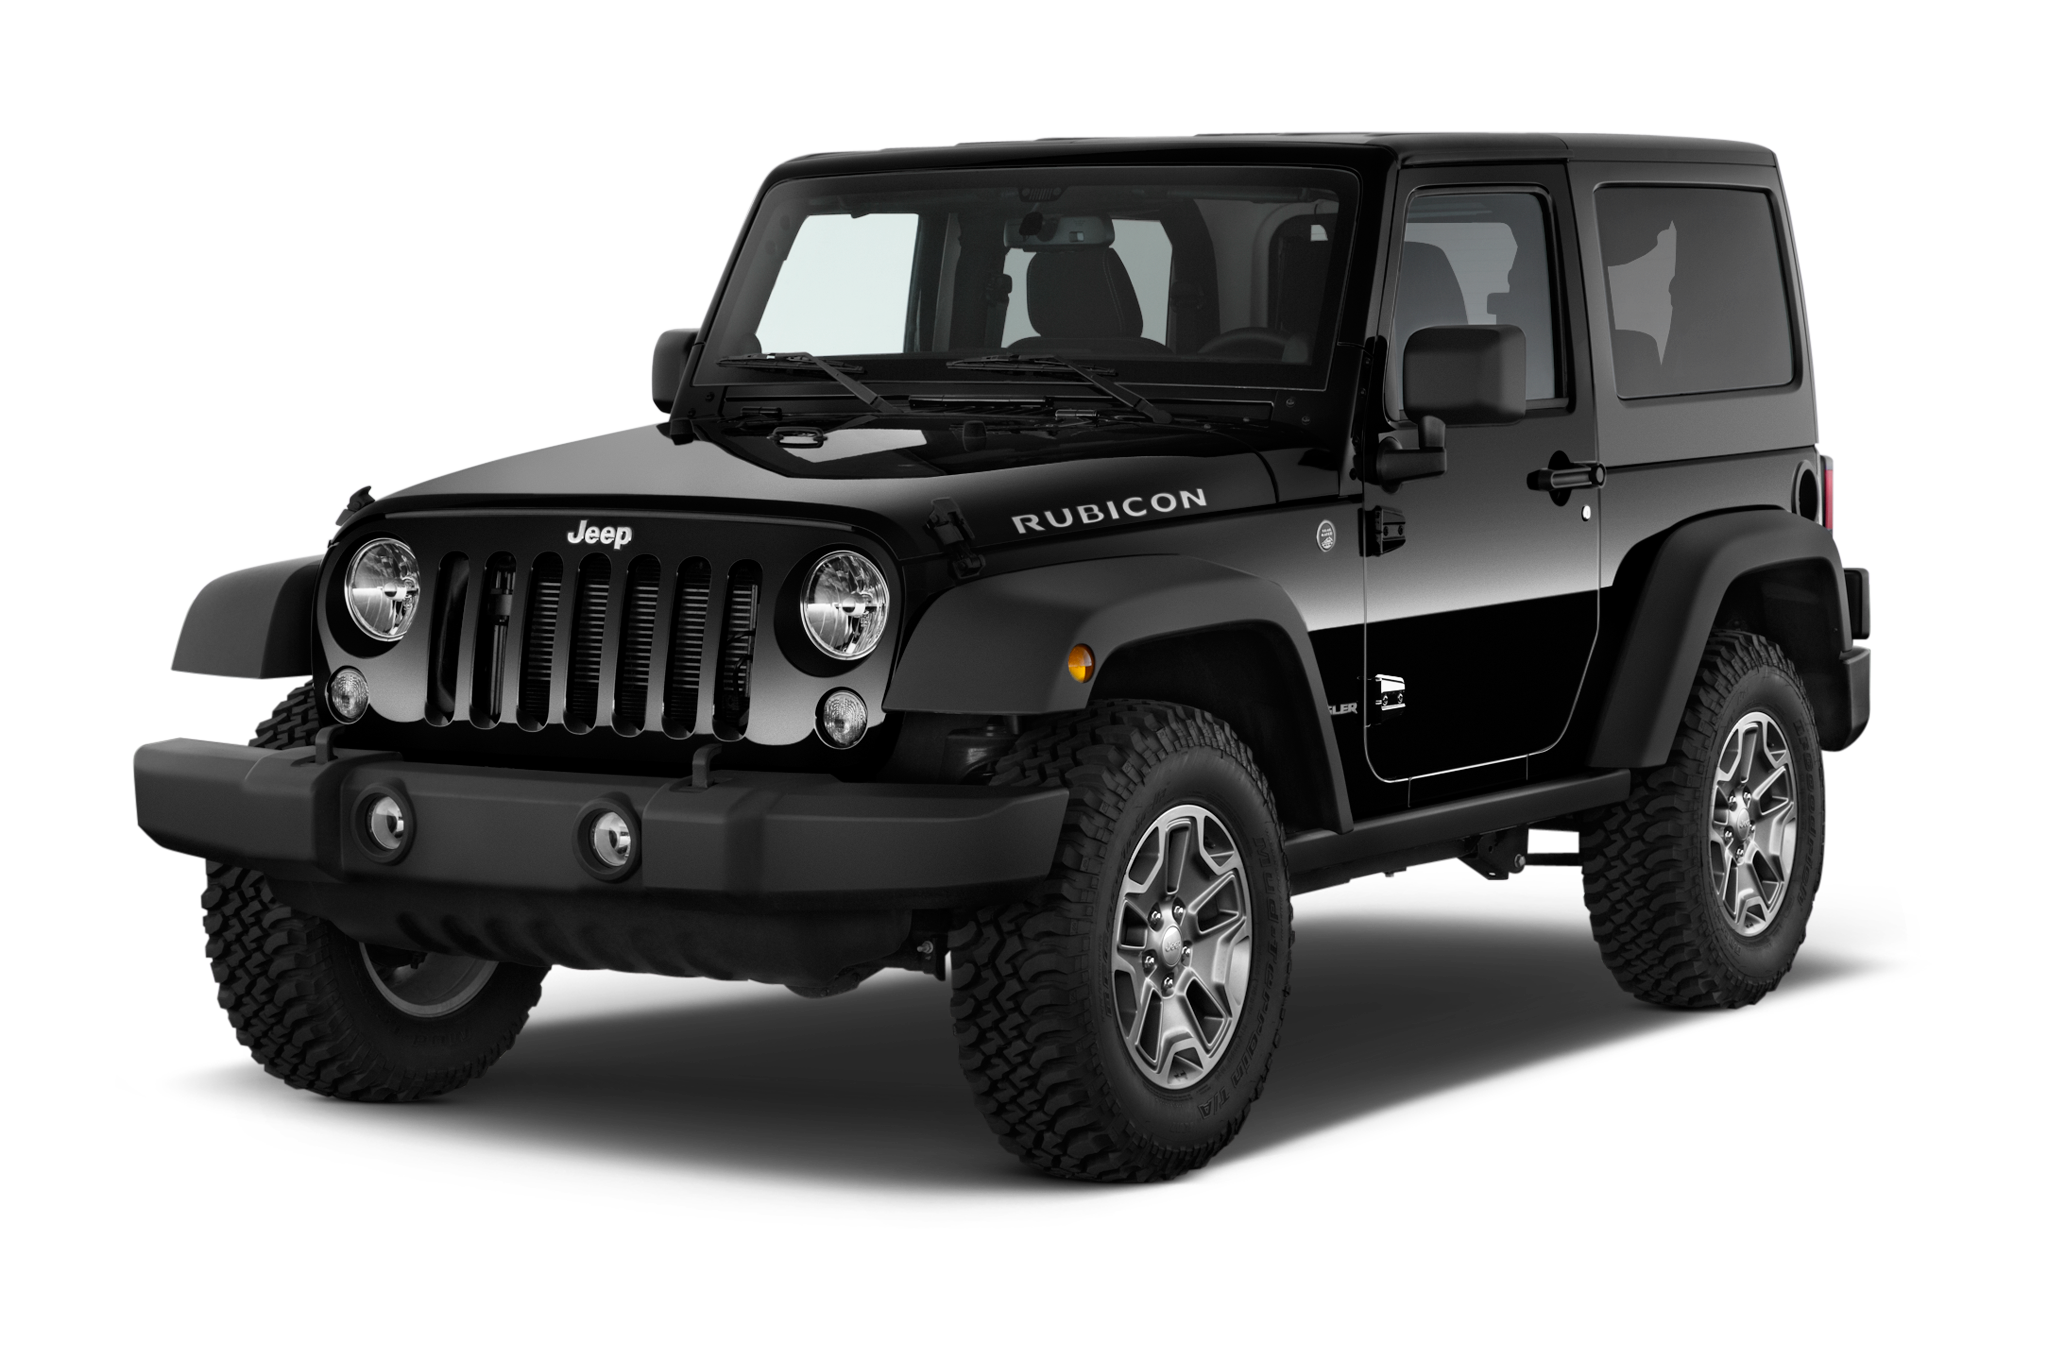 We are the largest dealer of jeep wrangler in Alberta. We have all models of Jeep Wrangler availabe for sale .